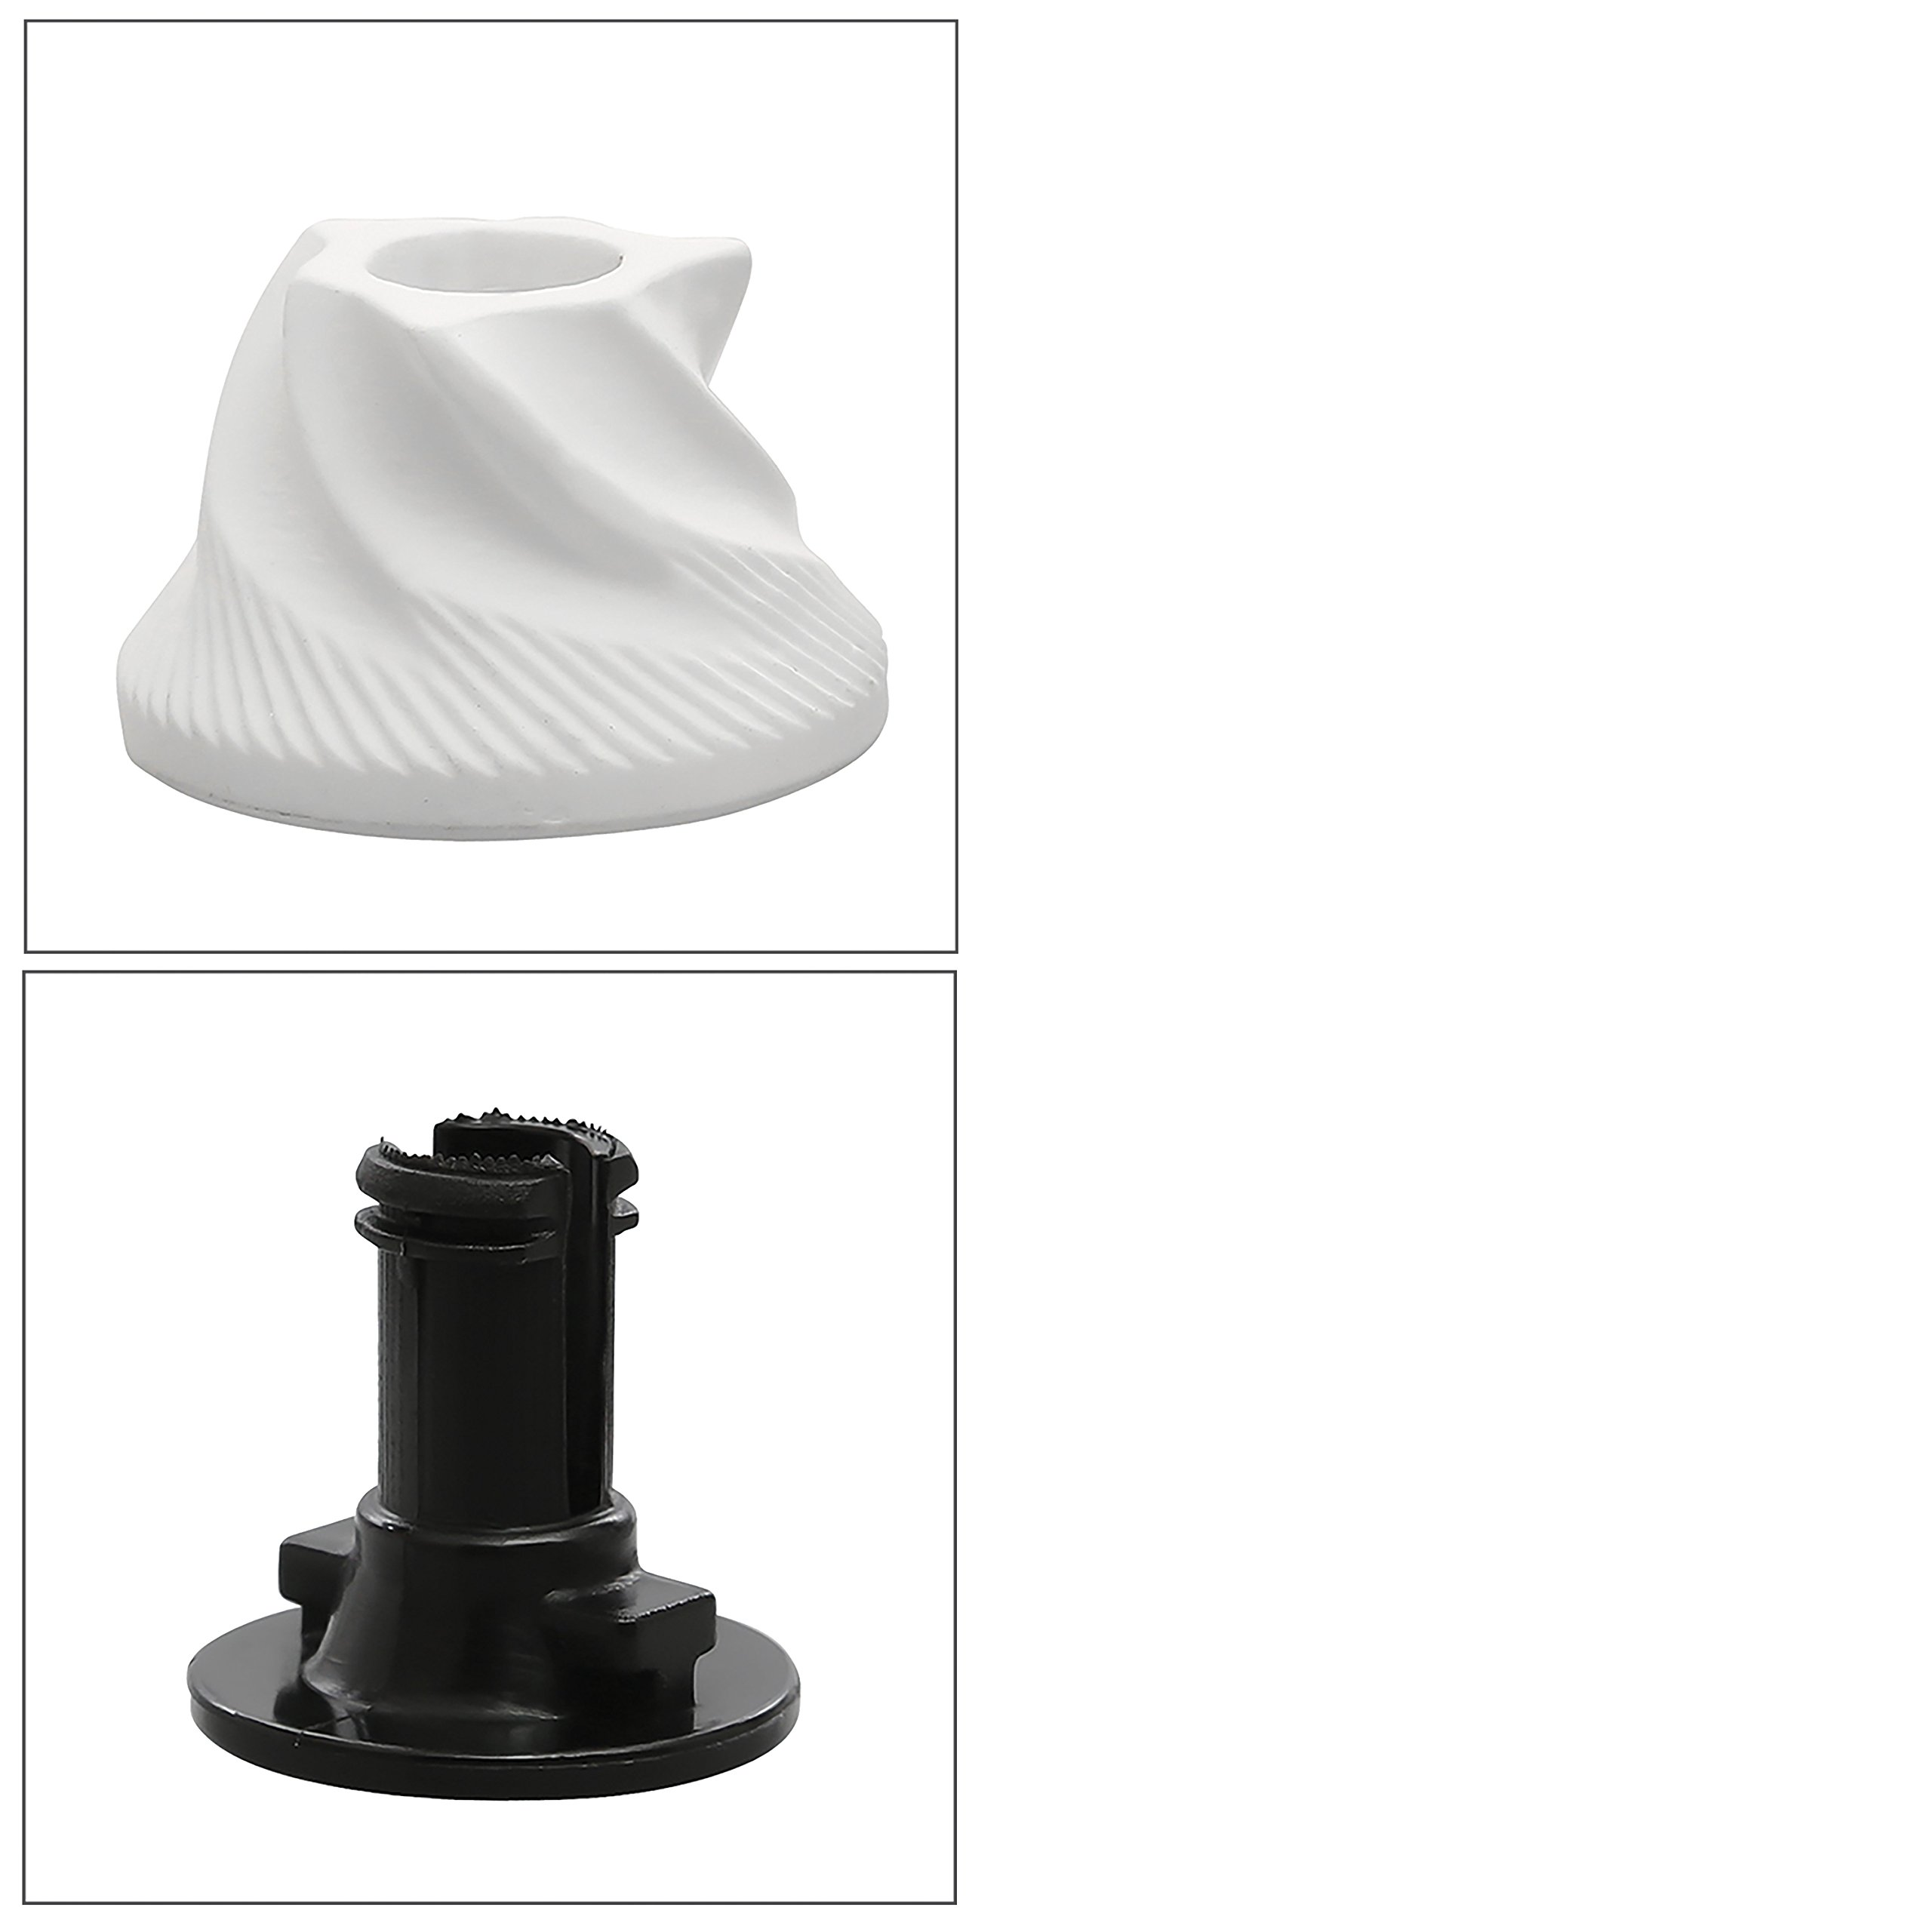 Conical Ceramic Burr for Precision Brewing And Plastic Part - Replacement Part for World Of Shanik Premium Quality Stainless Steel Manual Coffee Grinder